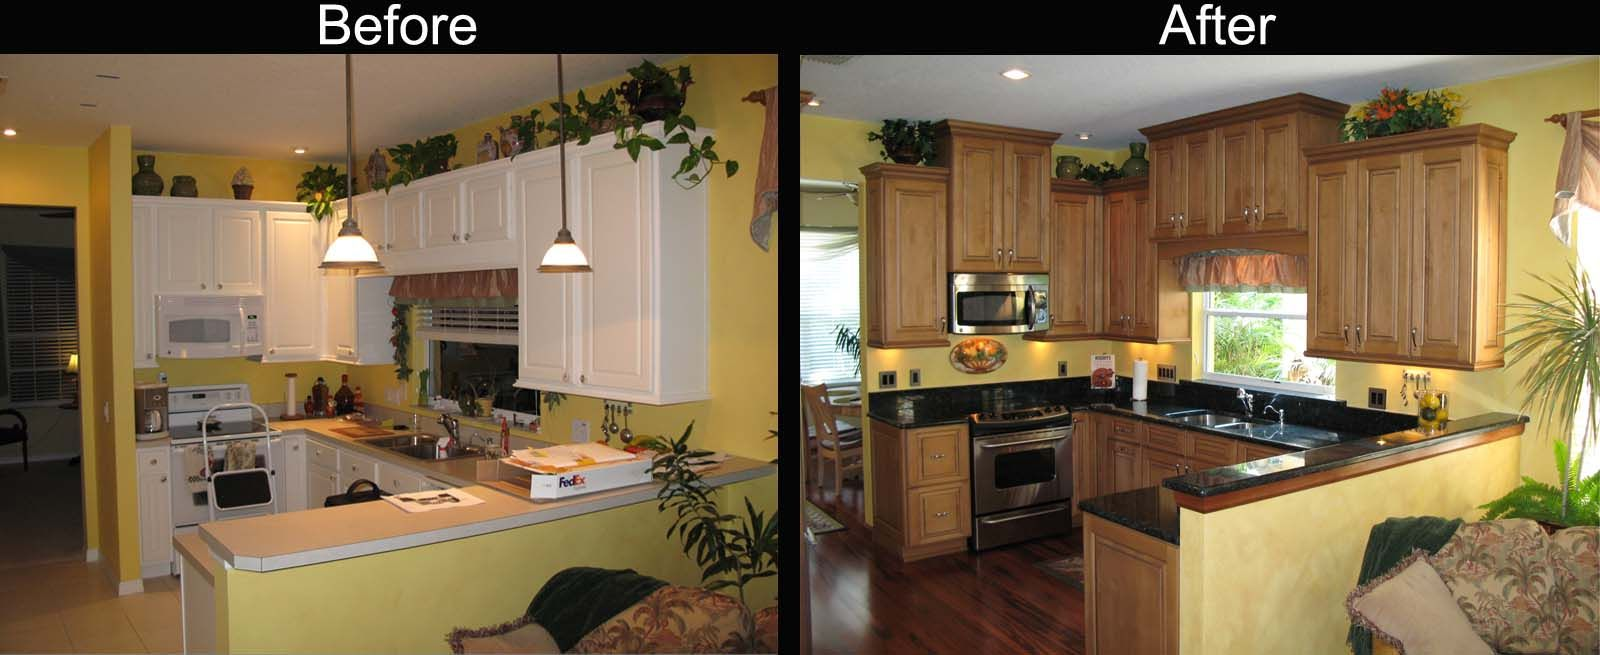 Remodeling A Small Kitchen Before And After painted cabinets before and after: ideas for your kitchen